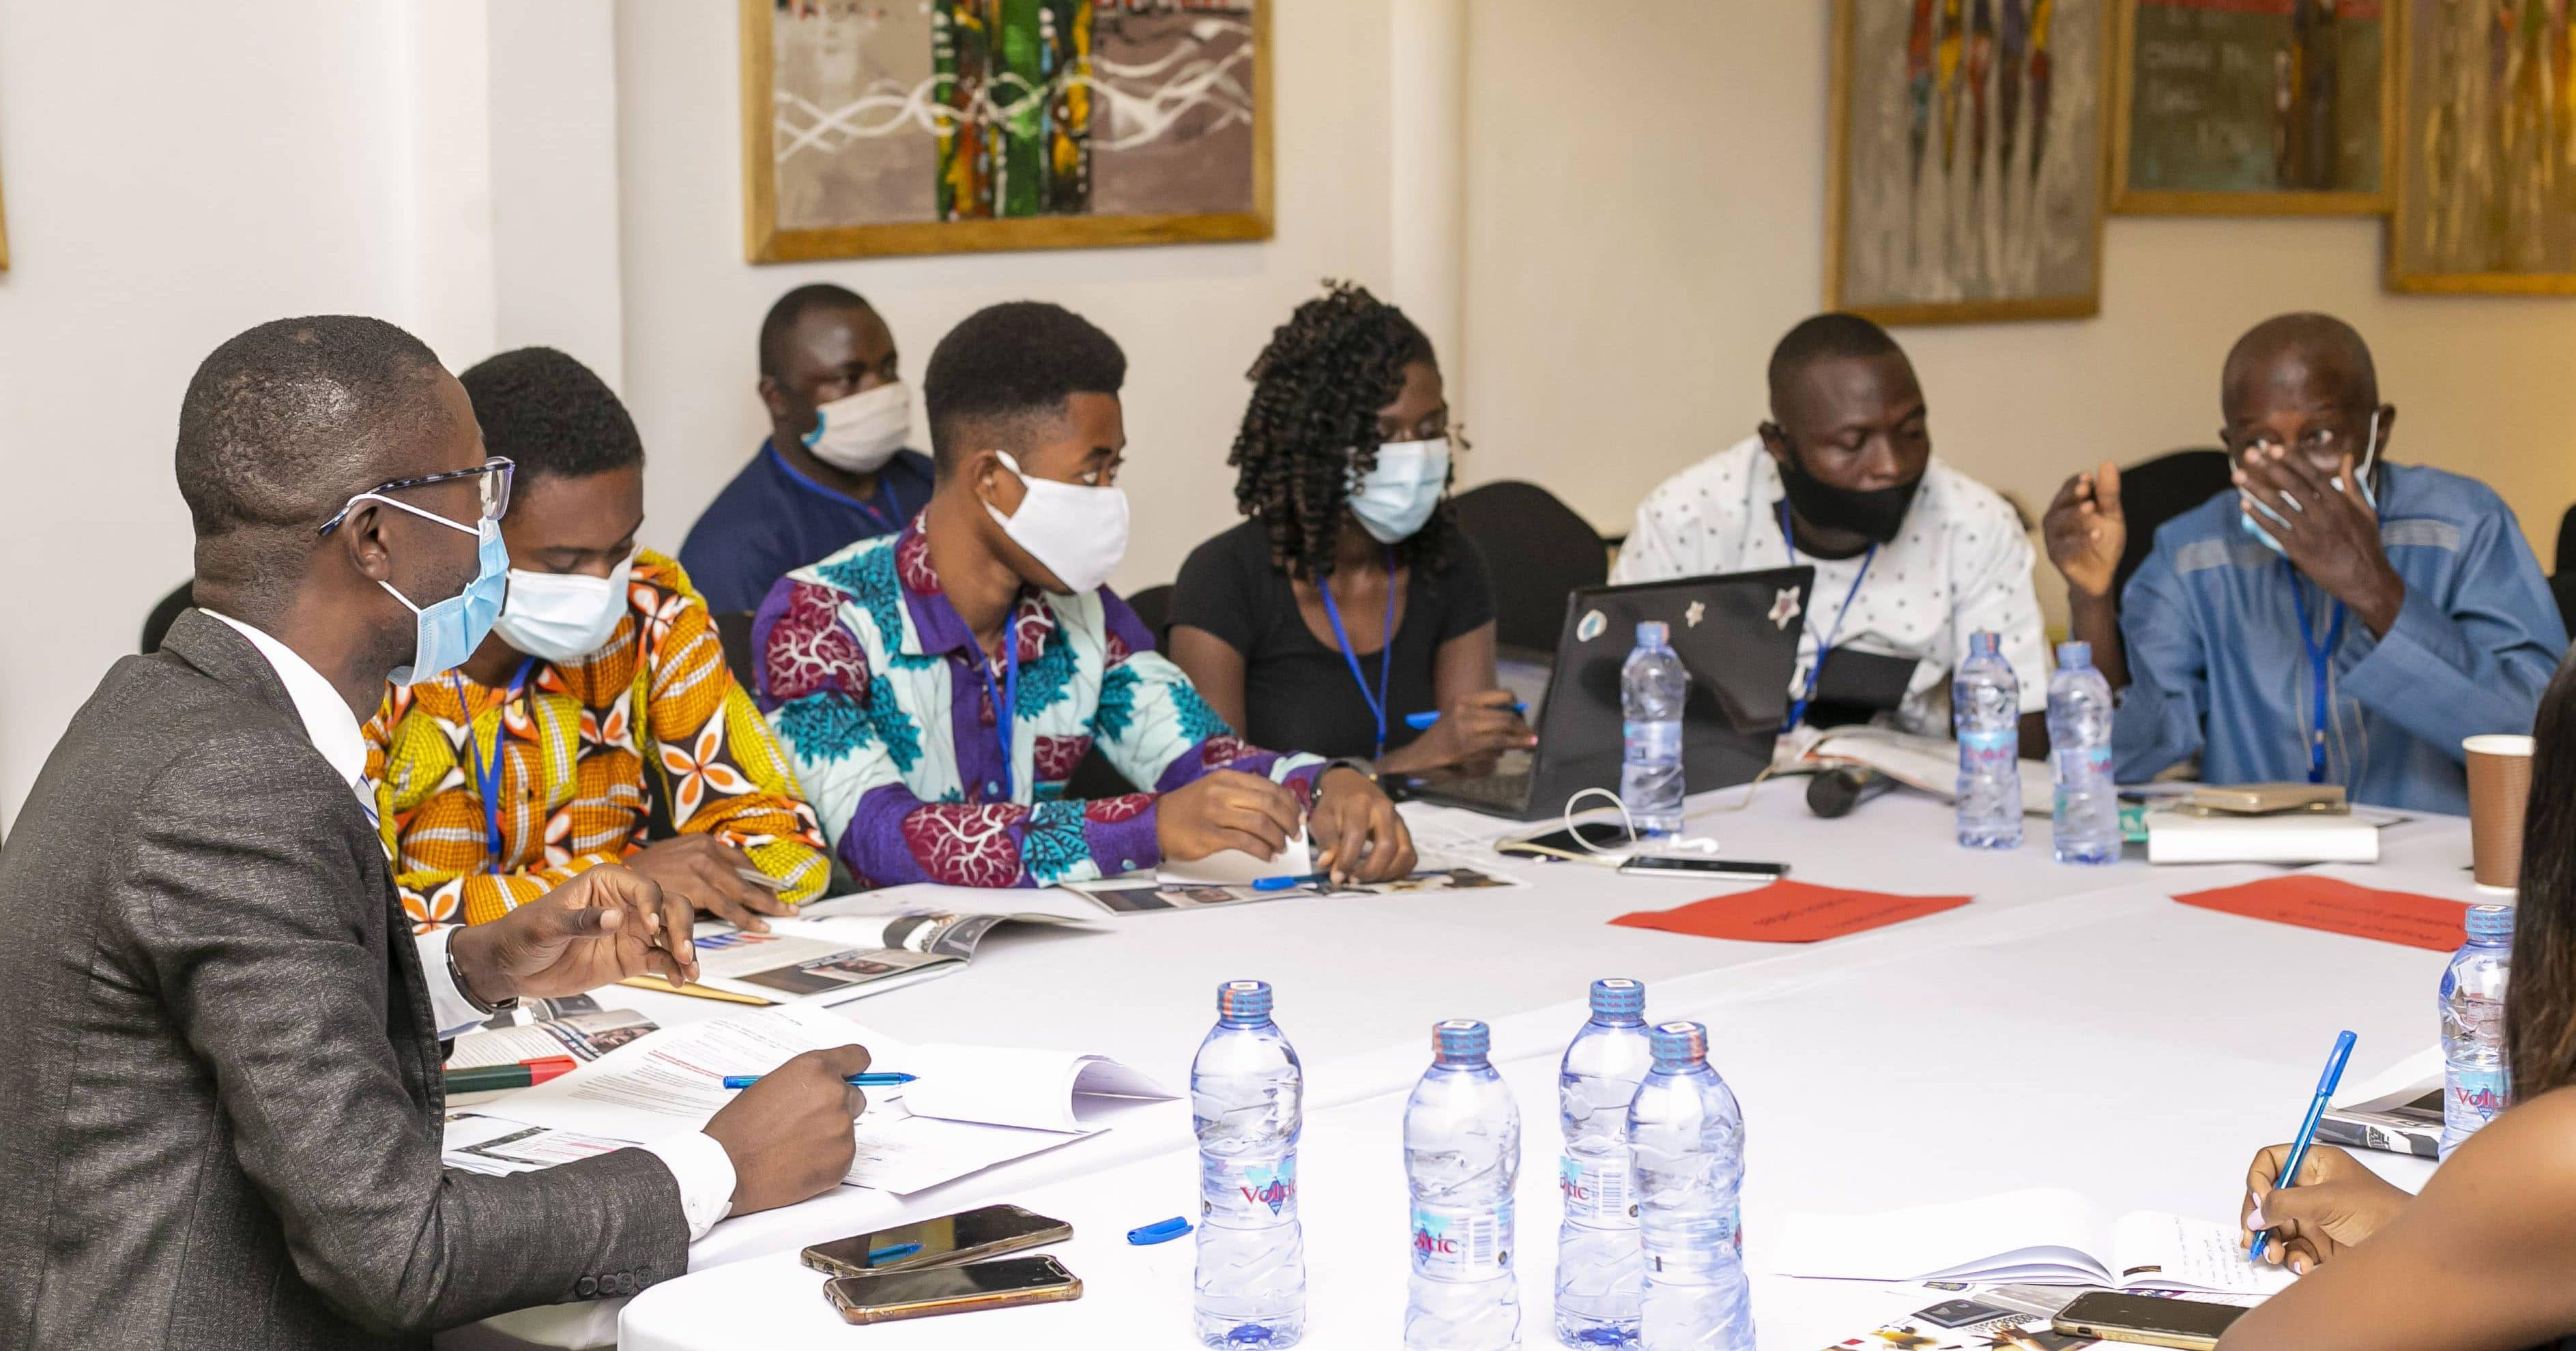 Interventions youth employment Ghana stakeholder engagement